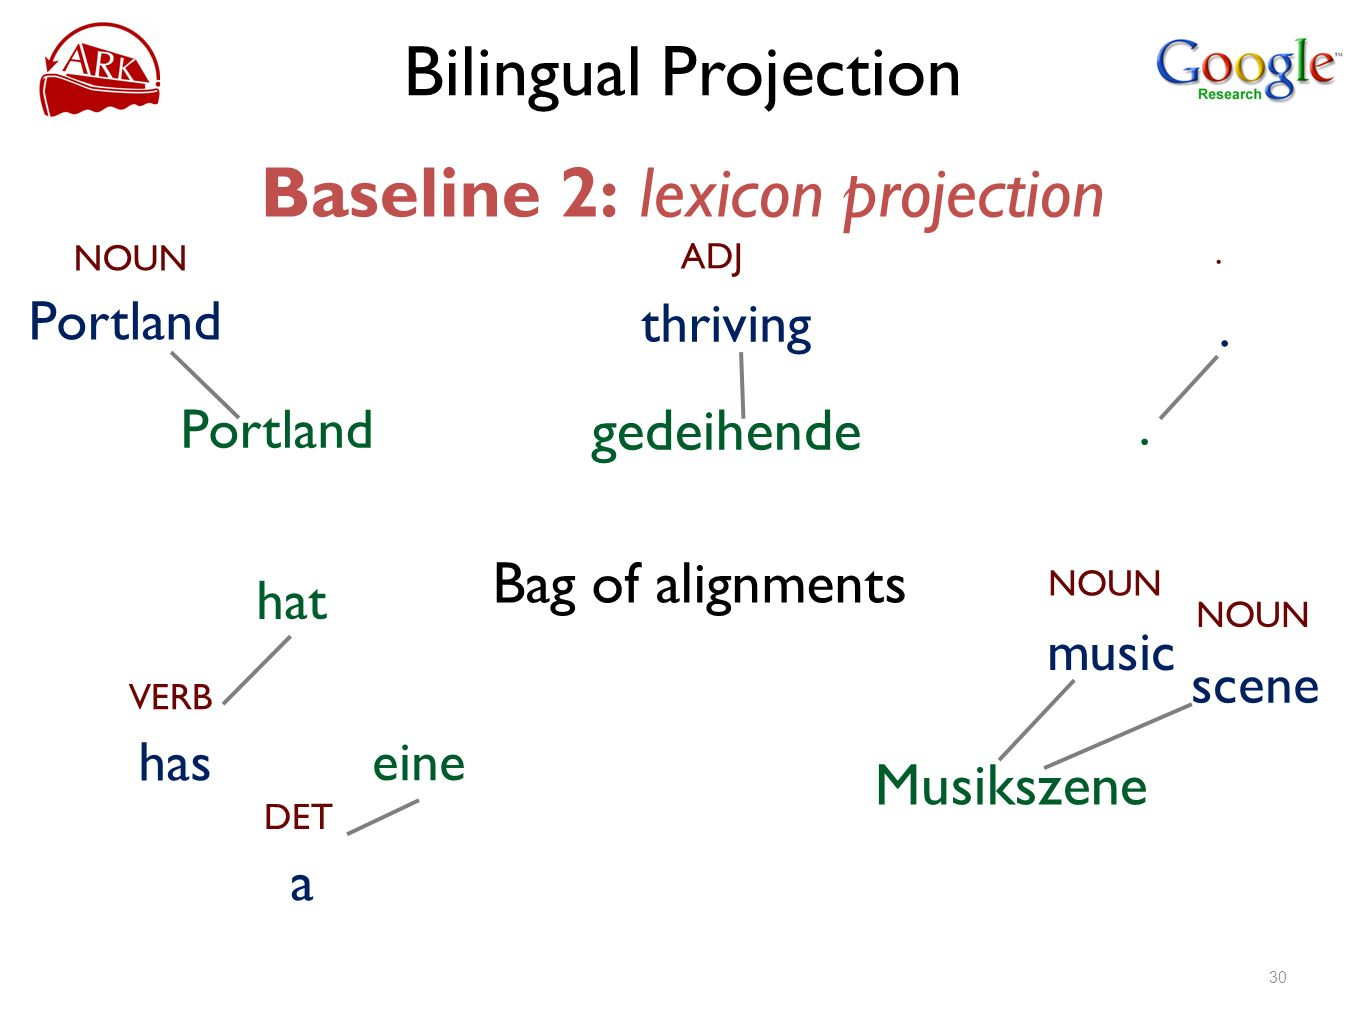 Baseline 2: lexicon projection